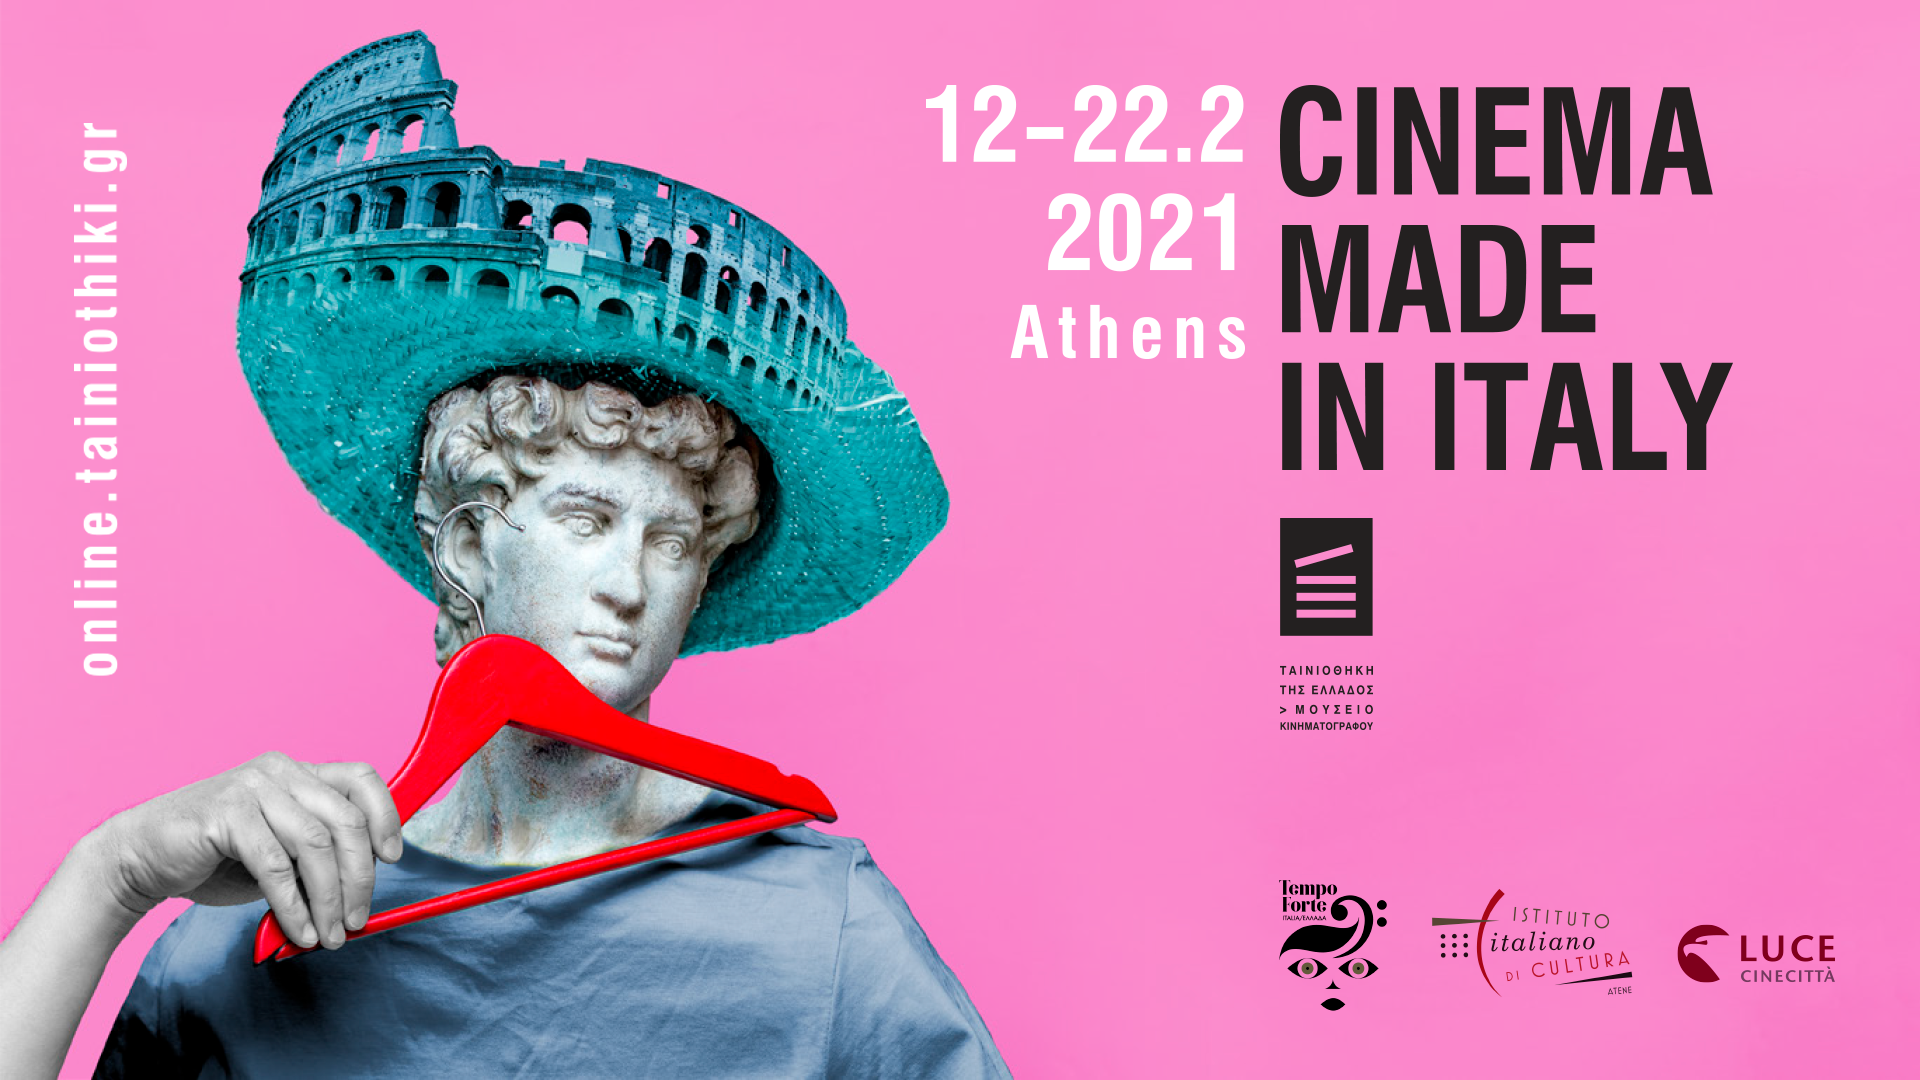 CINEMA MADE IN ITALY/ATHENS